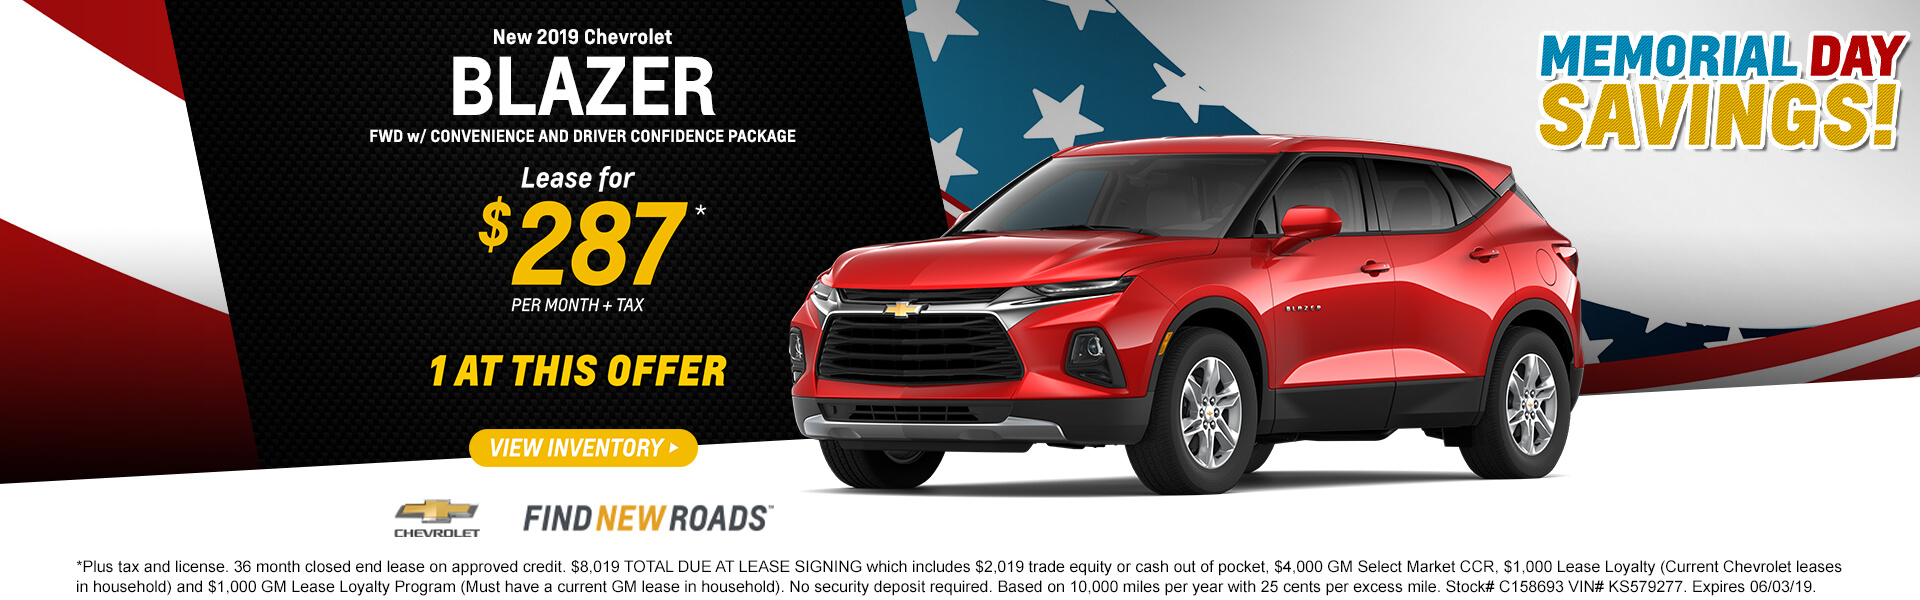 2019 CHEVROLET BLAZER FWD Convenience and Drive Confidence Pkg  LEASE for $287* + tax per month  1 AT THIS OFFER  *Plus tax and license. 36 month closed end lease on approved credit. $8,019 TOTAL DUE AT LEASE SIGNING which includes $2,019 trade equity or cash out of pocket, $4,000 GM Select Market CCR, $1,000 Lease Loyalty (Current Chevrolet leases in household) and $1,000 GM Lease Loyalty Program (Must have a current GM lease in household). No security deposit required. Based on 10,000 miles per year with 25 cents per excess mile. Stock# C158693 VIN# KS579277. Expires 06/03/19.